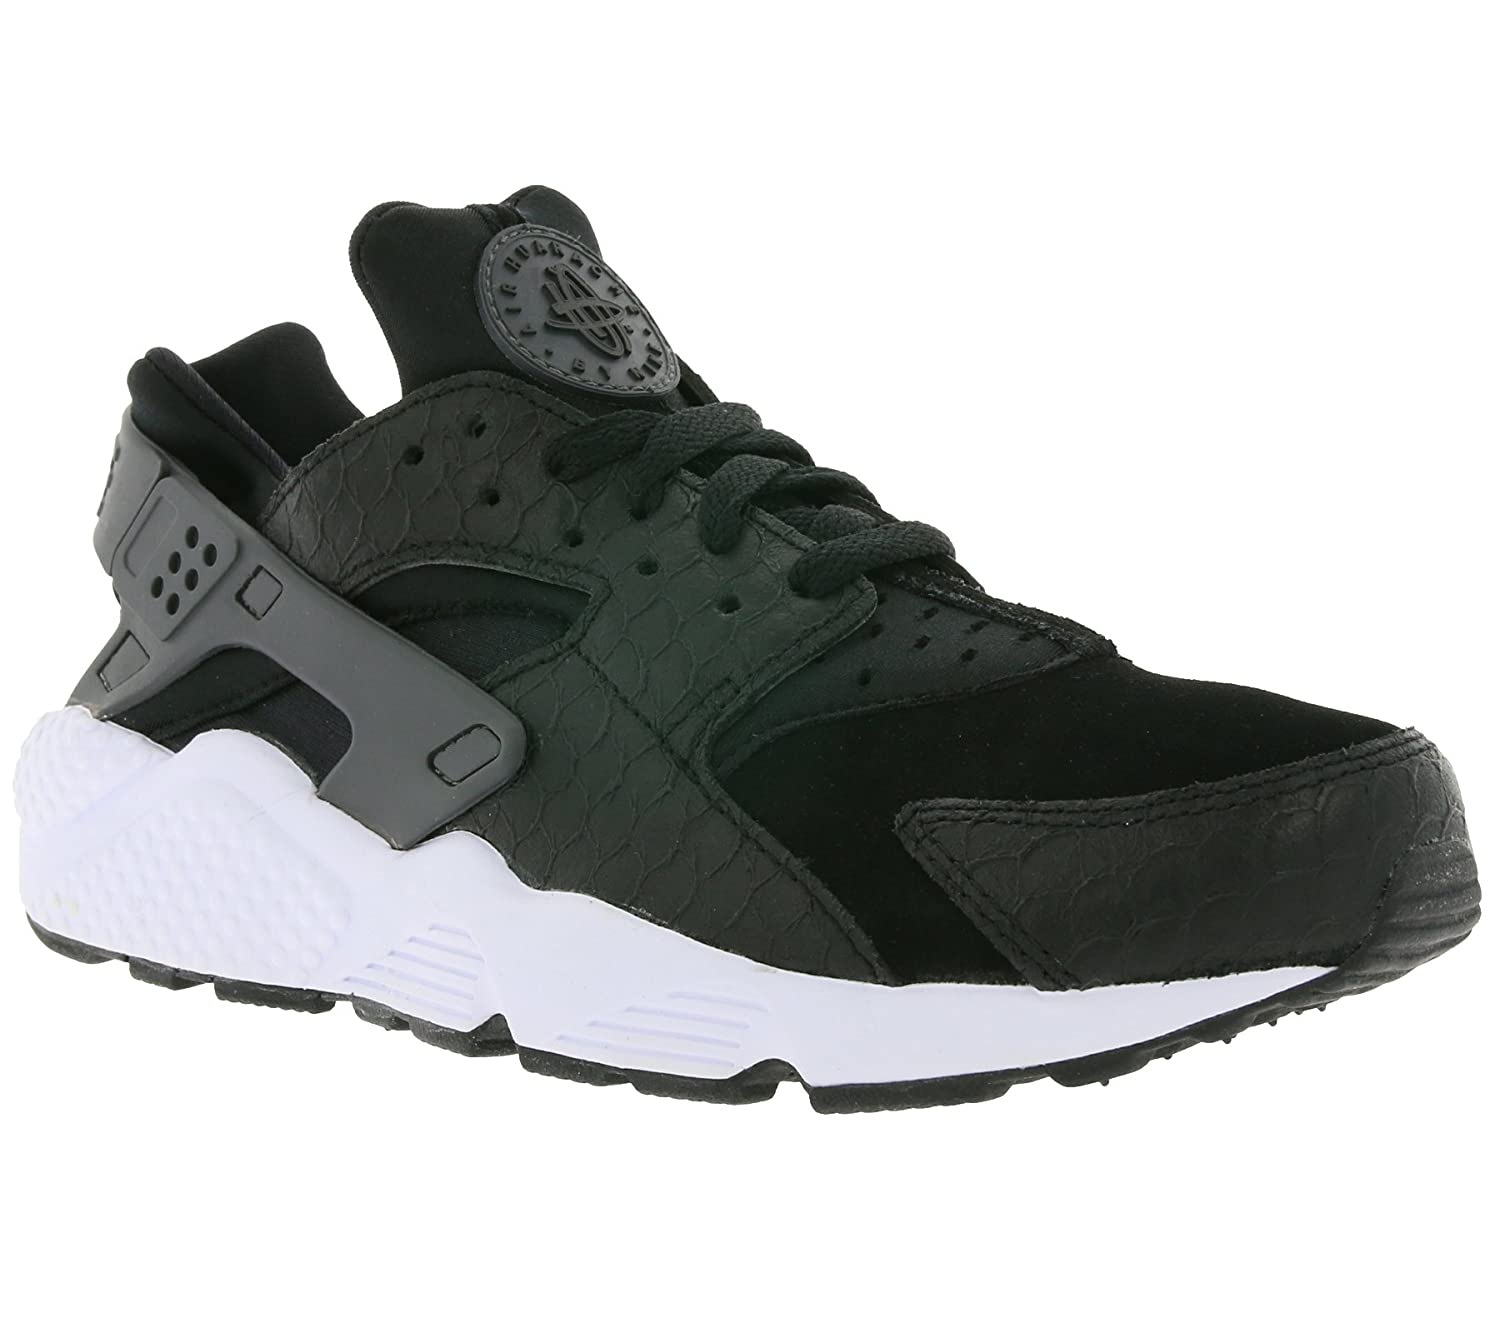 Nike Air Huarache Run PRM Aluminium Black White 704830 401